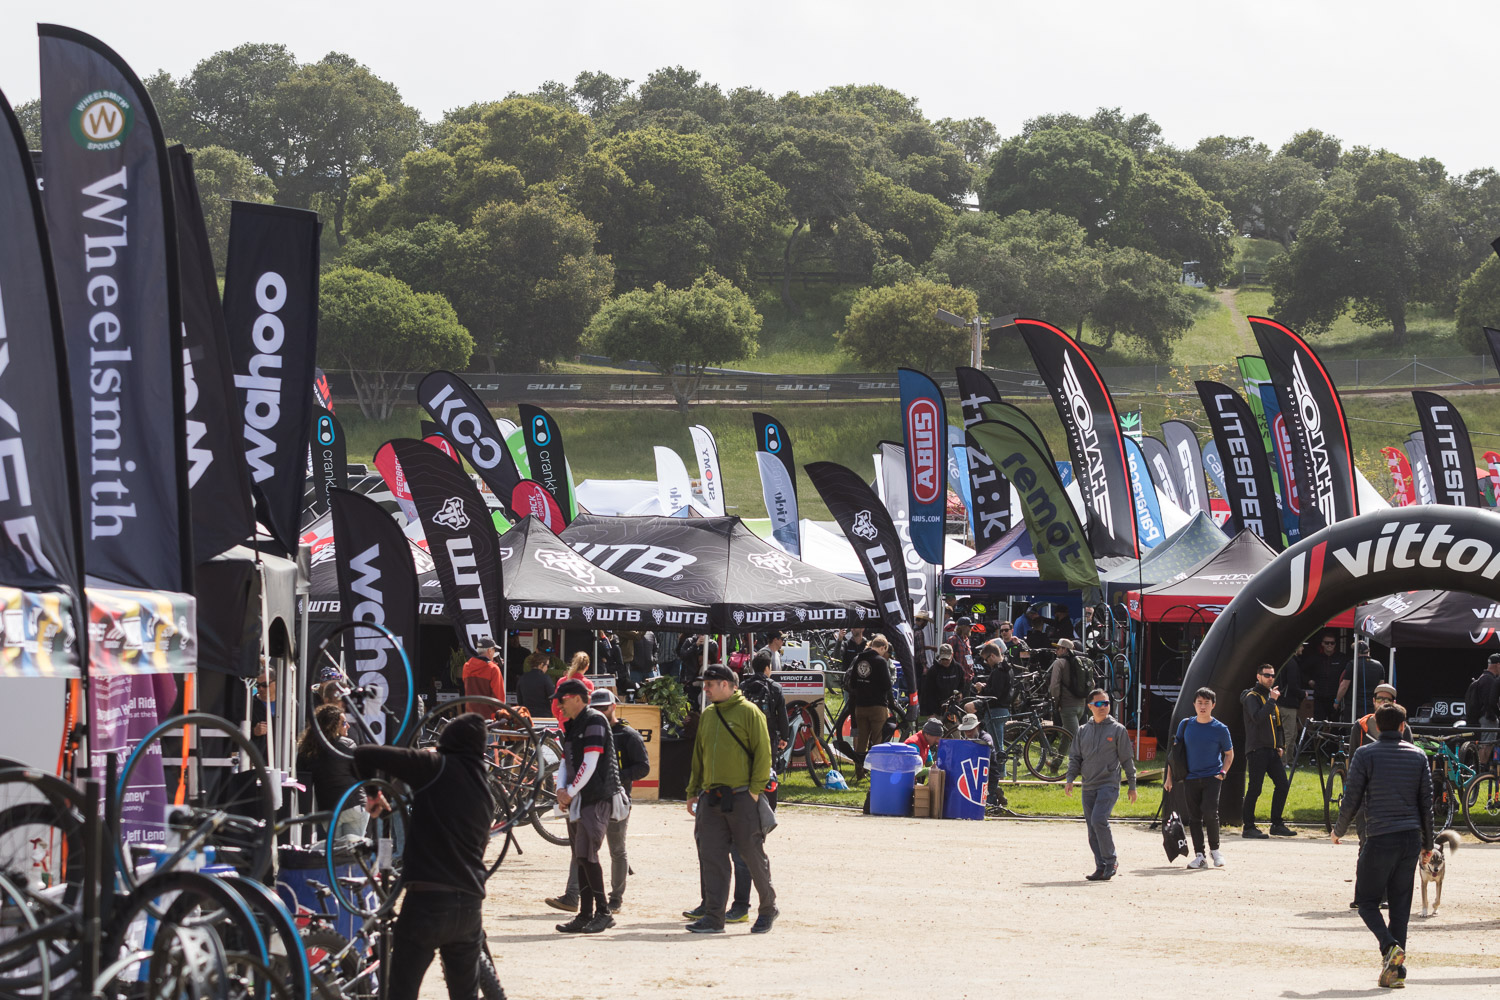 Sea Otter 2019: The News From America's Bicycle Show | GearJunkie